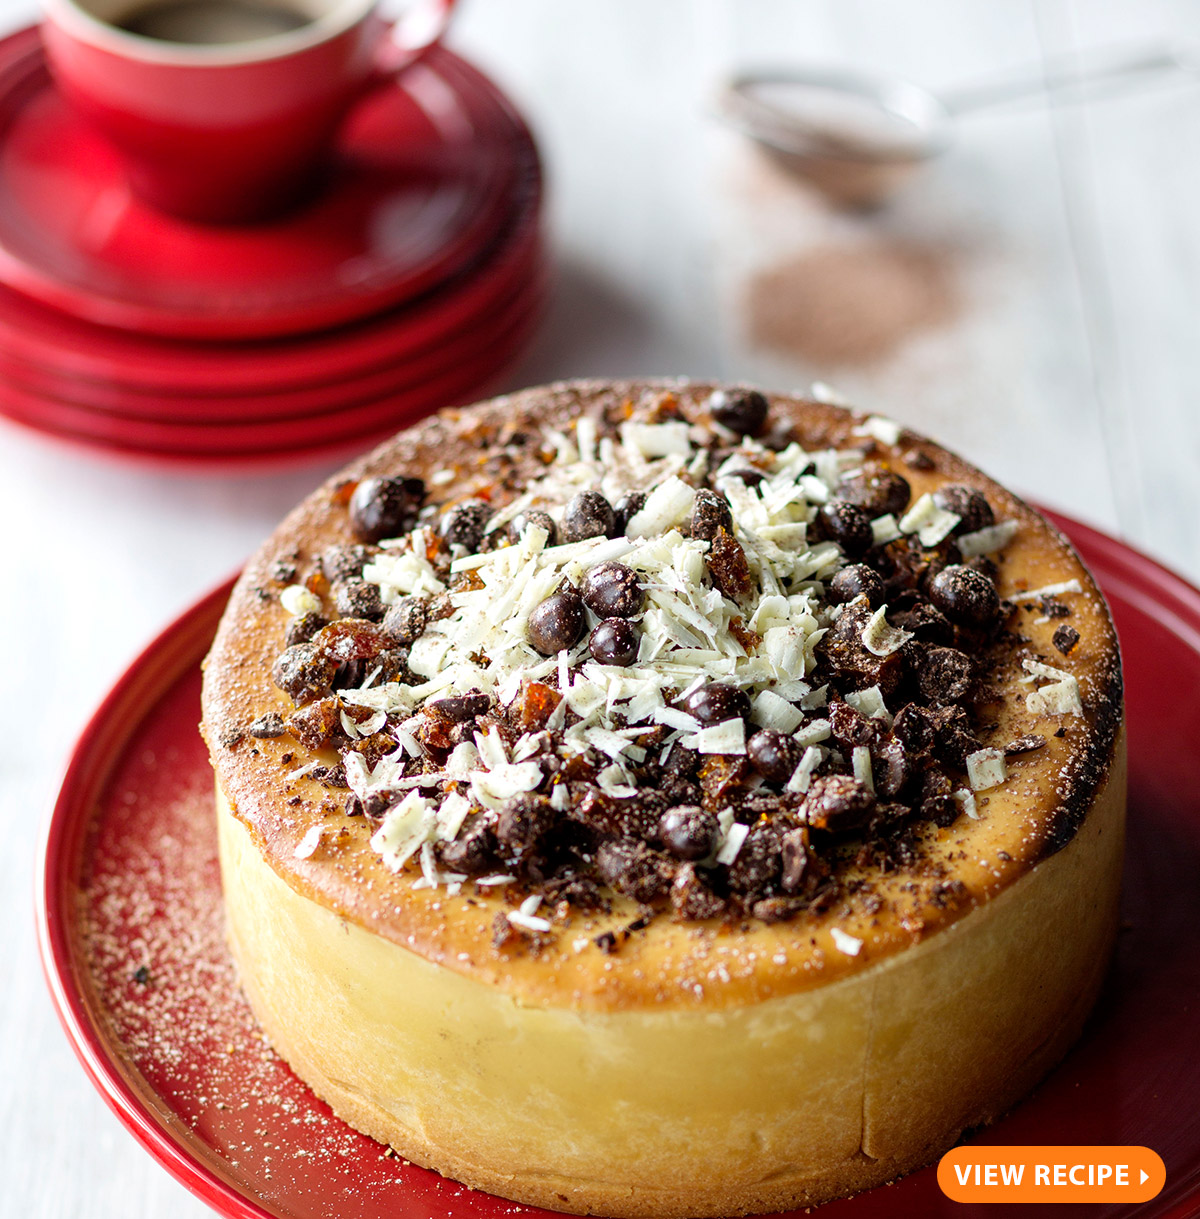 BAKED COFFEE CHEESECAKE WITH CHOCOLATE COFFEE BEAN CRUMBLE